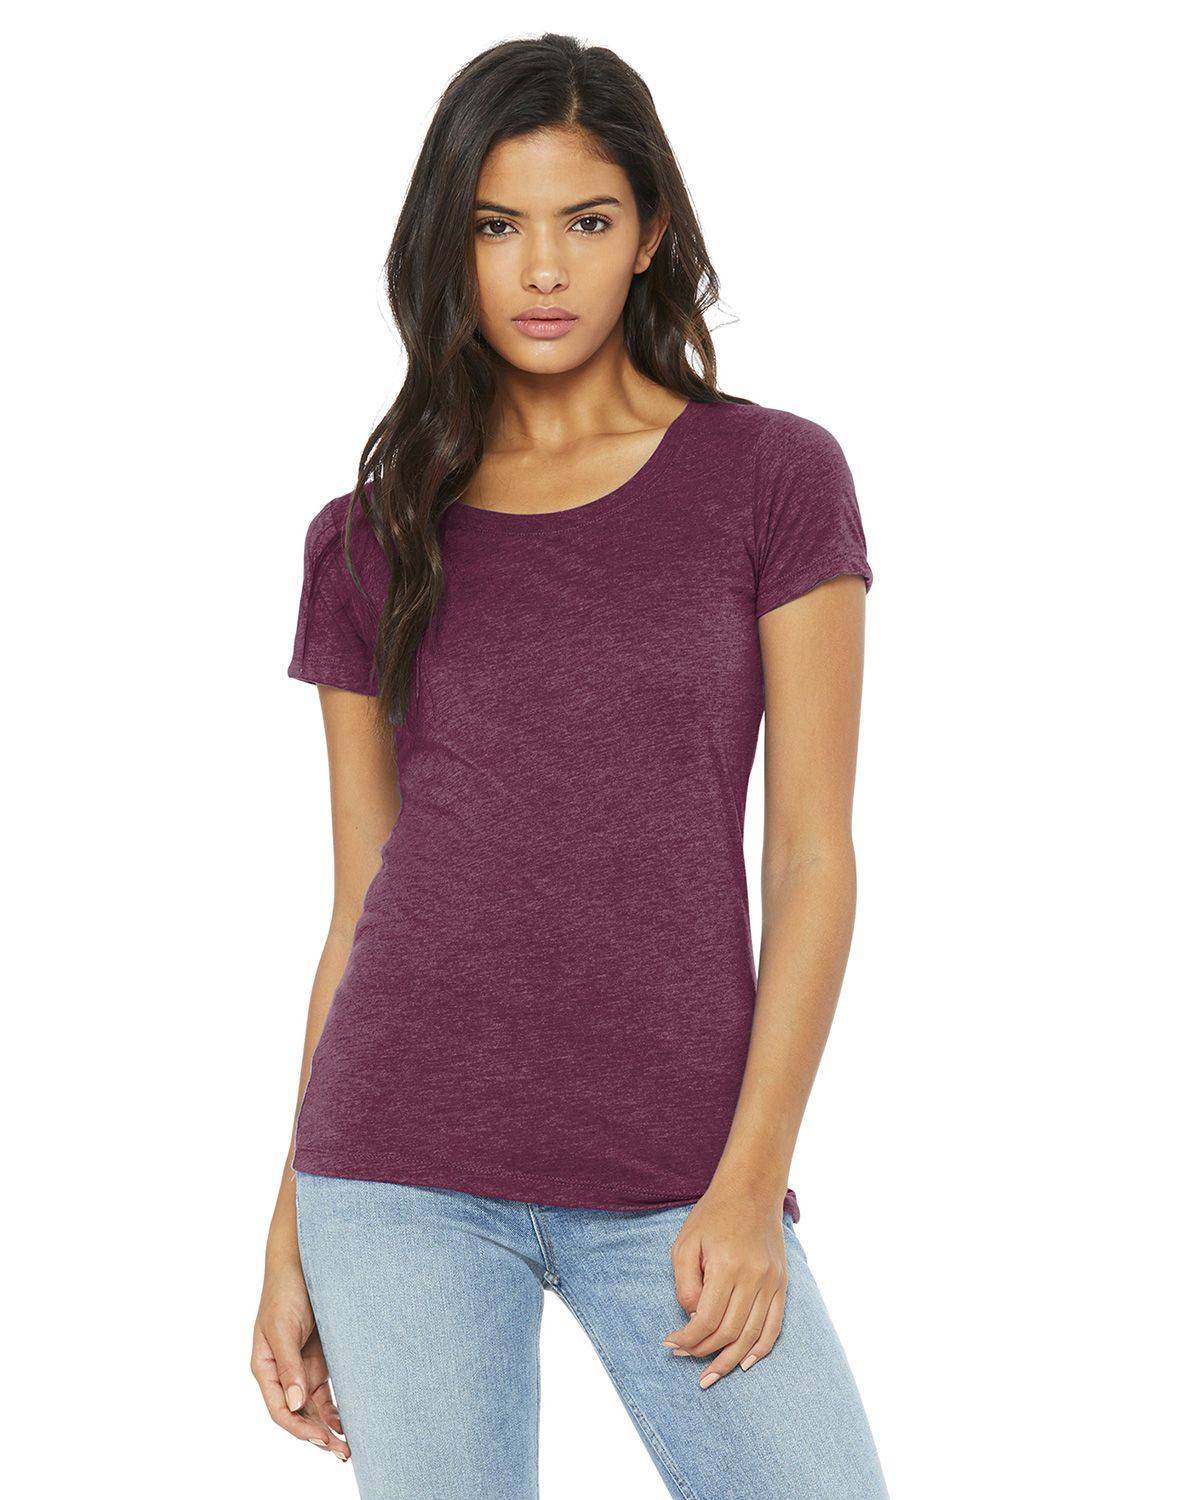 Bella + Canvas BC8413 Women's Triblend Short Sleeve Tee - Maroon Triblend - S from Bella + Canvas